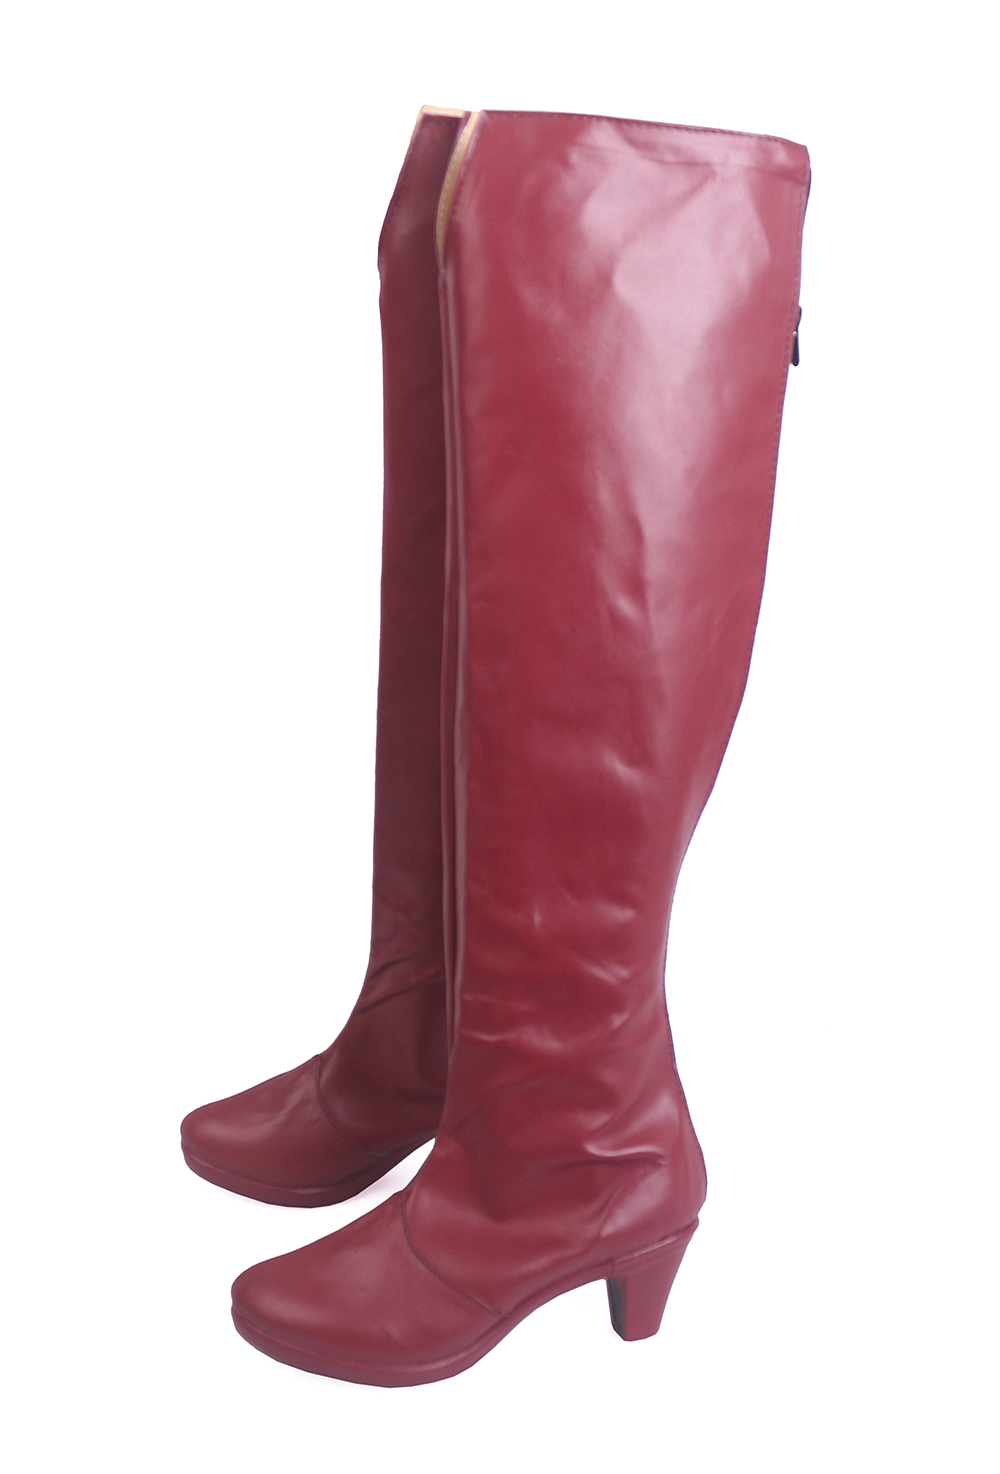 Black Clover Quartet Knights Vanessa Enoteca Cosplay Boots Red Shoes (3)